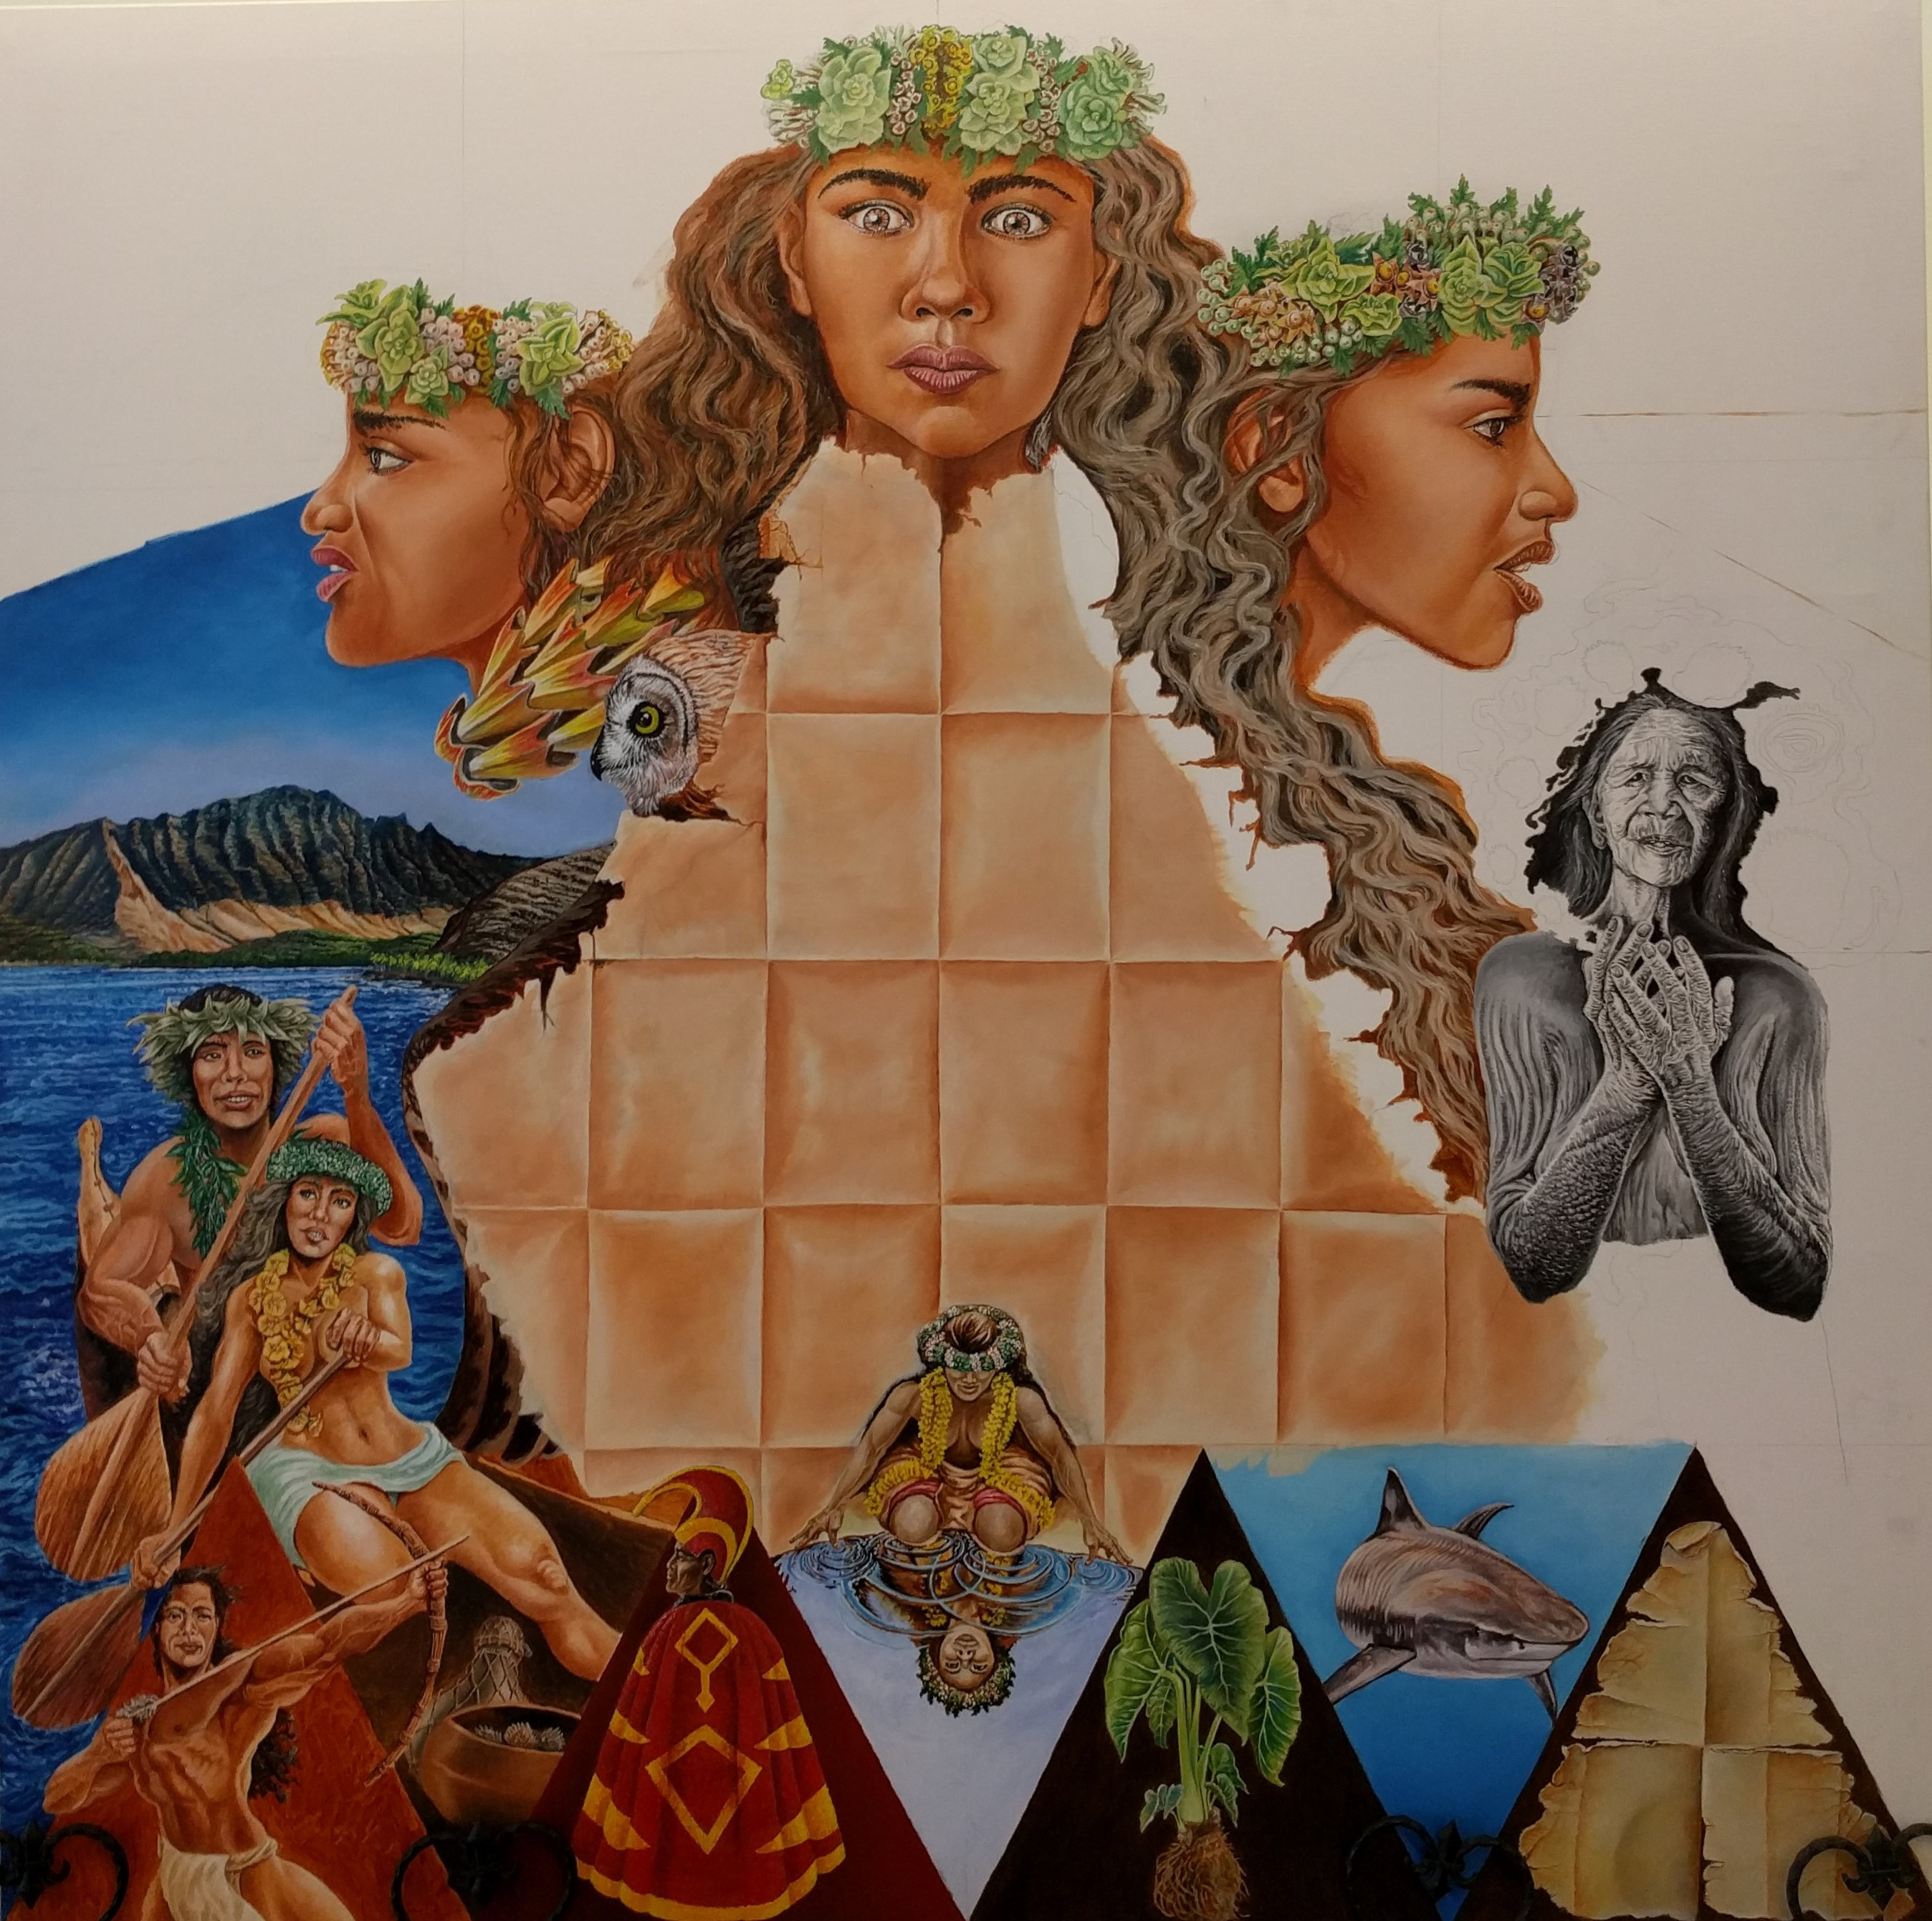 Once Kupihea's mural is completed, a larger digitized version will be placed on a wall